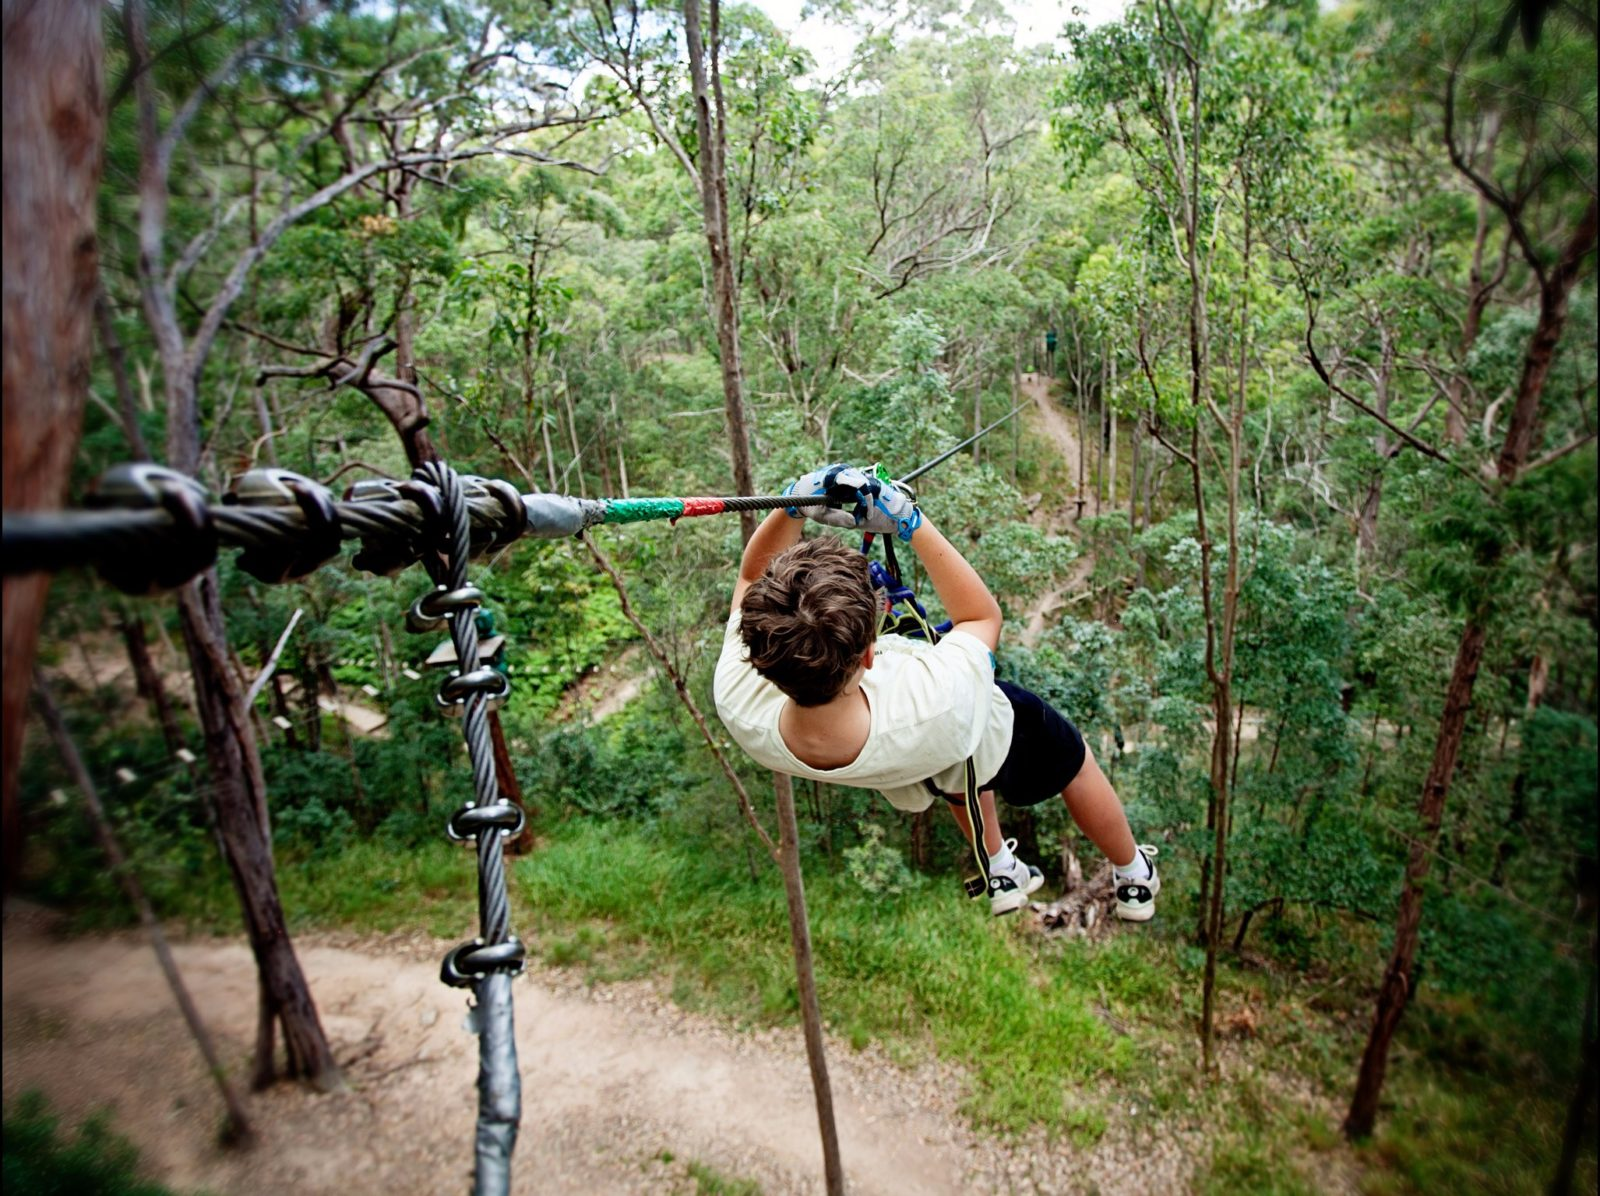 12 huge flying foxes and 100+ TreeTop Challenges